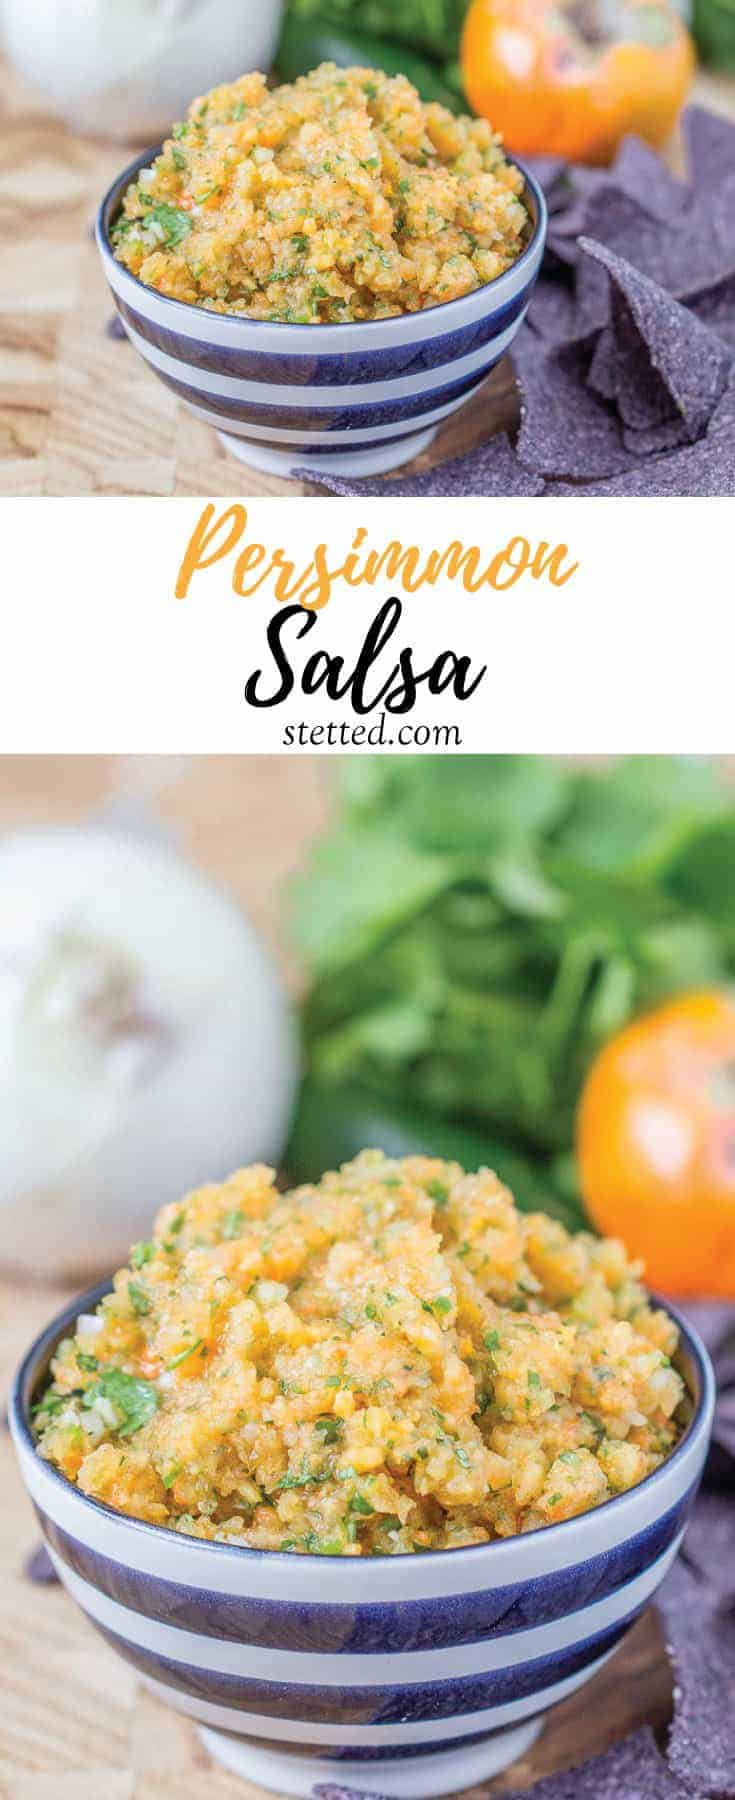 Persimmon salsa is a simple autumn salsa for all your snacking needs. If you like fruit salsa, you definitely need to try it!